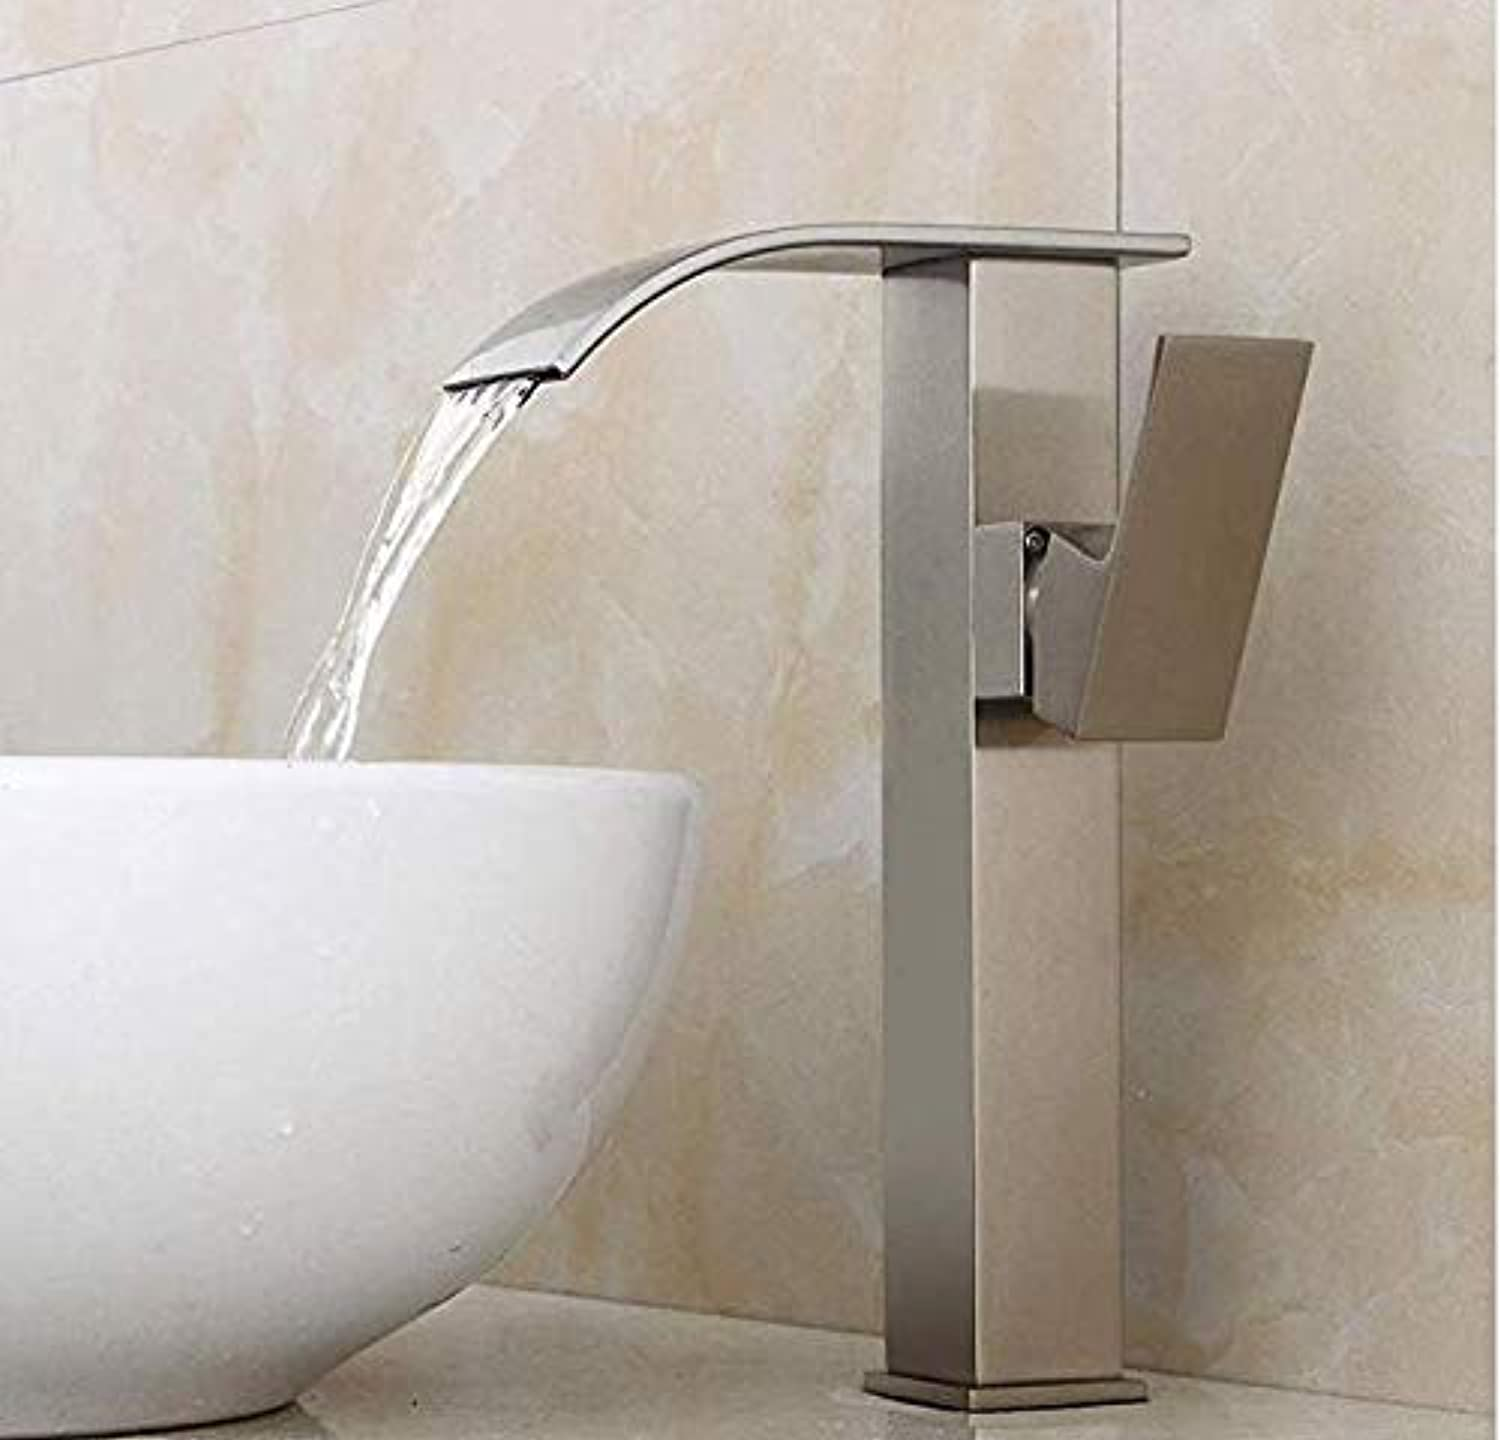 Bathroom Sink Tap Hot Cold Faucet Washbasin Single Handle 360 Degree redation All Copper Basin Faucet Above Counter Basin Height Faucet Waterfall Hot and Cold Faucet Bathroom Copper Faucet